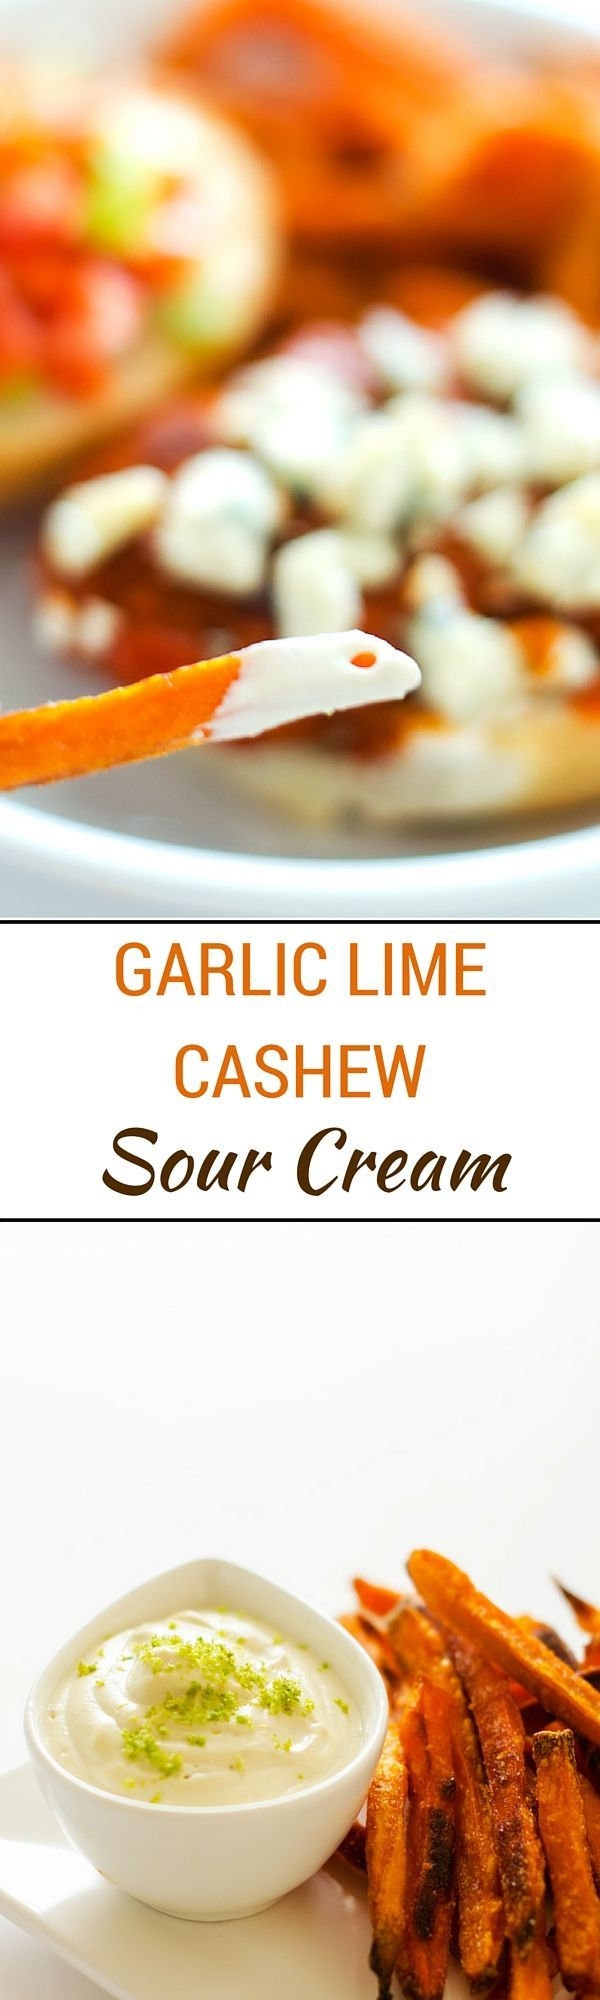 Garlic Lime Cashew Sour Cream - This vegan and gluten free alternative to sour cream is easy to make and so delicious - WendyPolisi.com